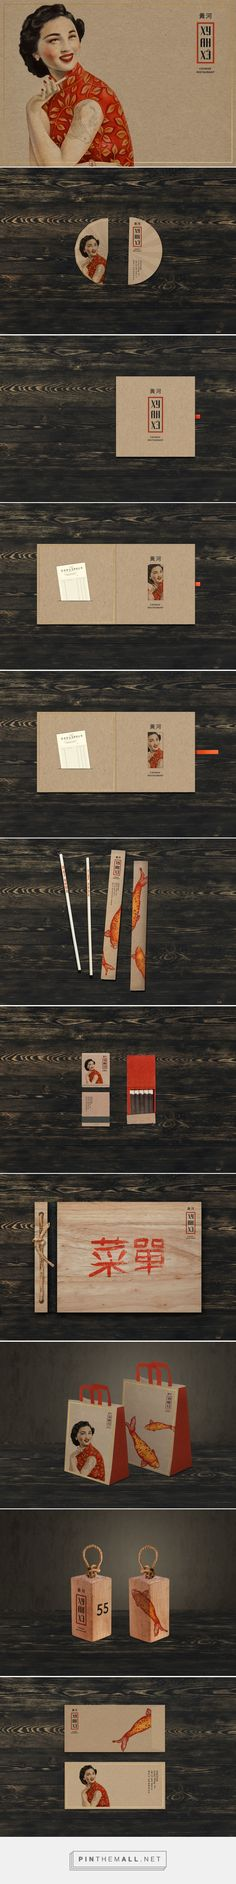 HUANHE Chinese Restaurant Branding by Bureau Bumblebee | Fivestar Branding Agency – Design and Branding Agency & Curated Inspiration Gallery